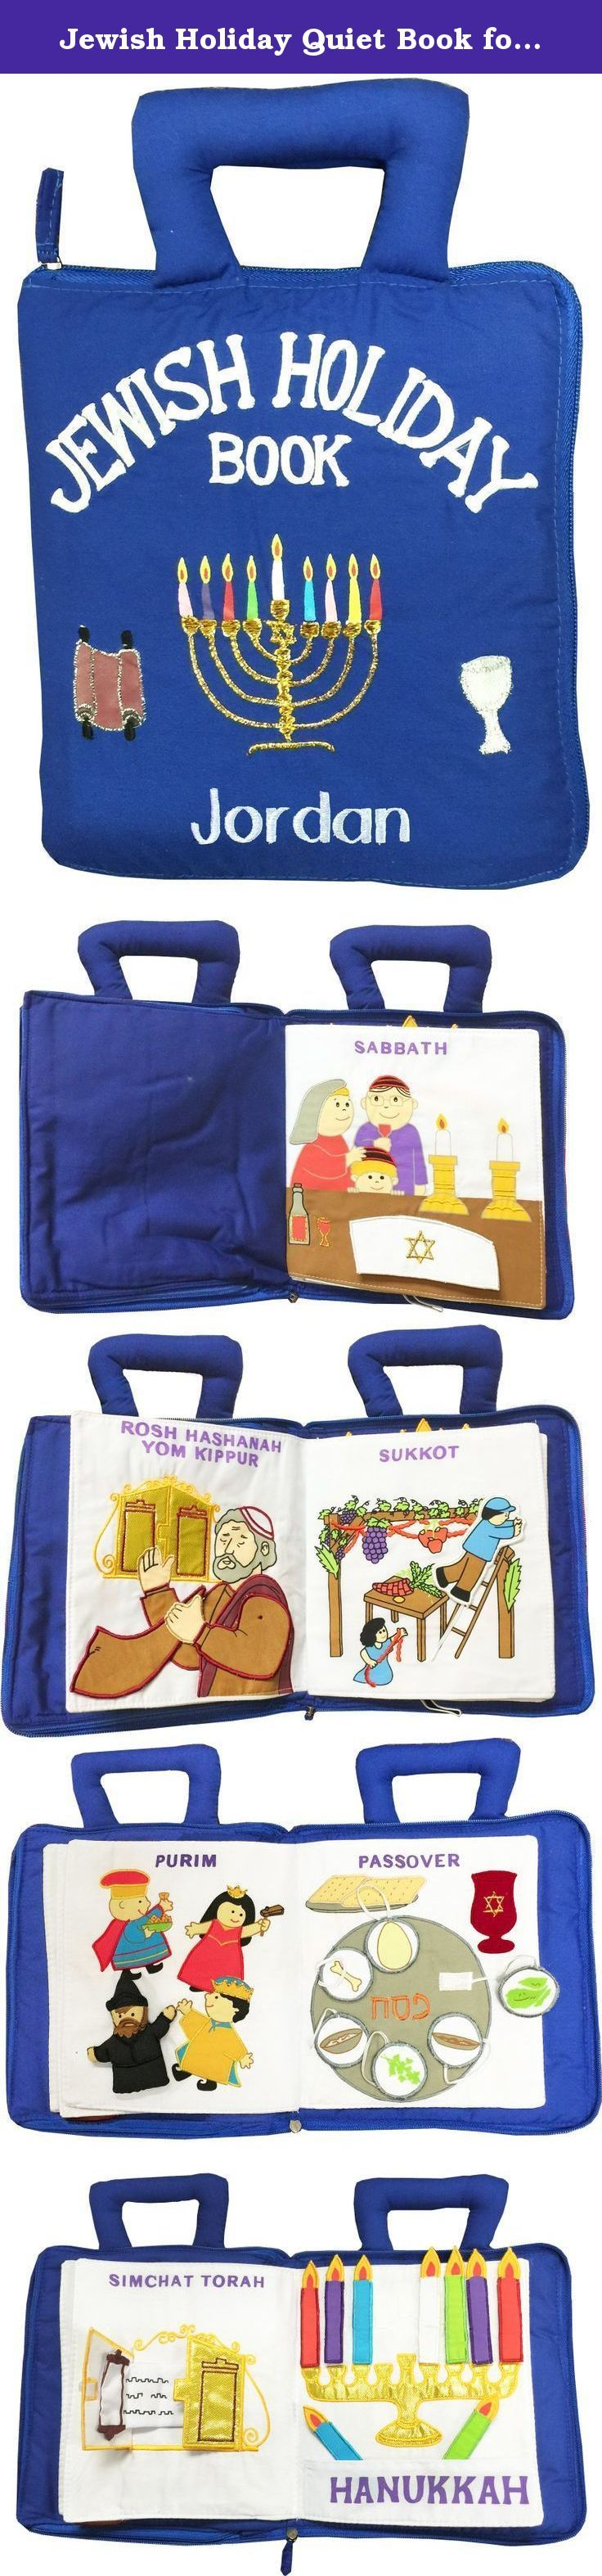 Jewish Holiday Quiet Book for Children By Pockets of Learning - PERSONALIZED. This fabric, zippered interactive book introduces children to the Jewish Holidays and their meanings. Holidays include: Passover, Purim, Sabbath, Sukkot, Rosh Hashanah, Yom Kippur, Simchat Torah, Hanukkah and Shavout. Parents Guide included.